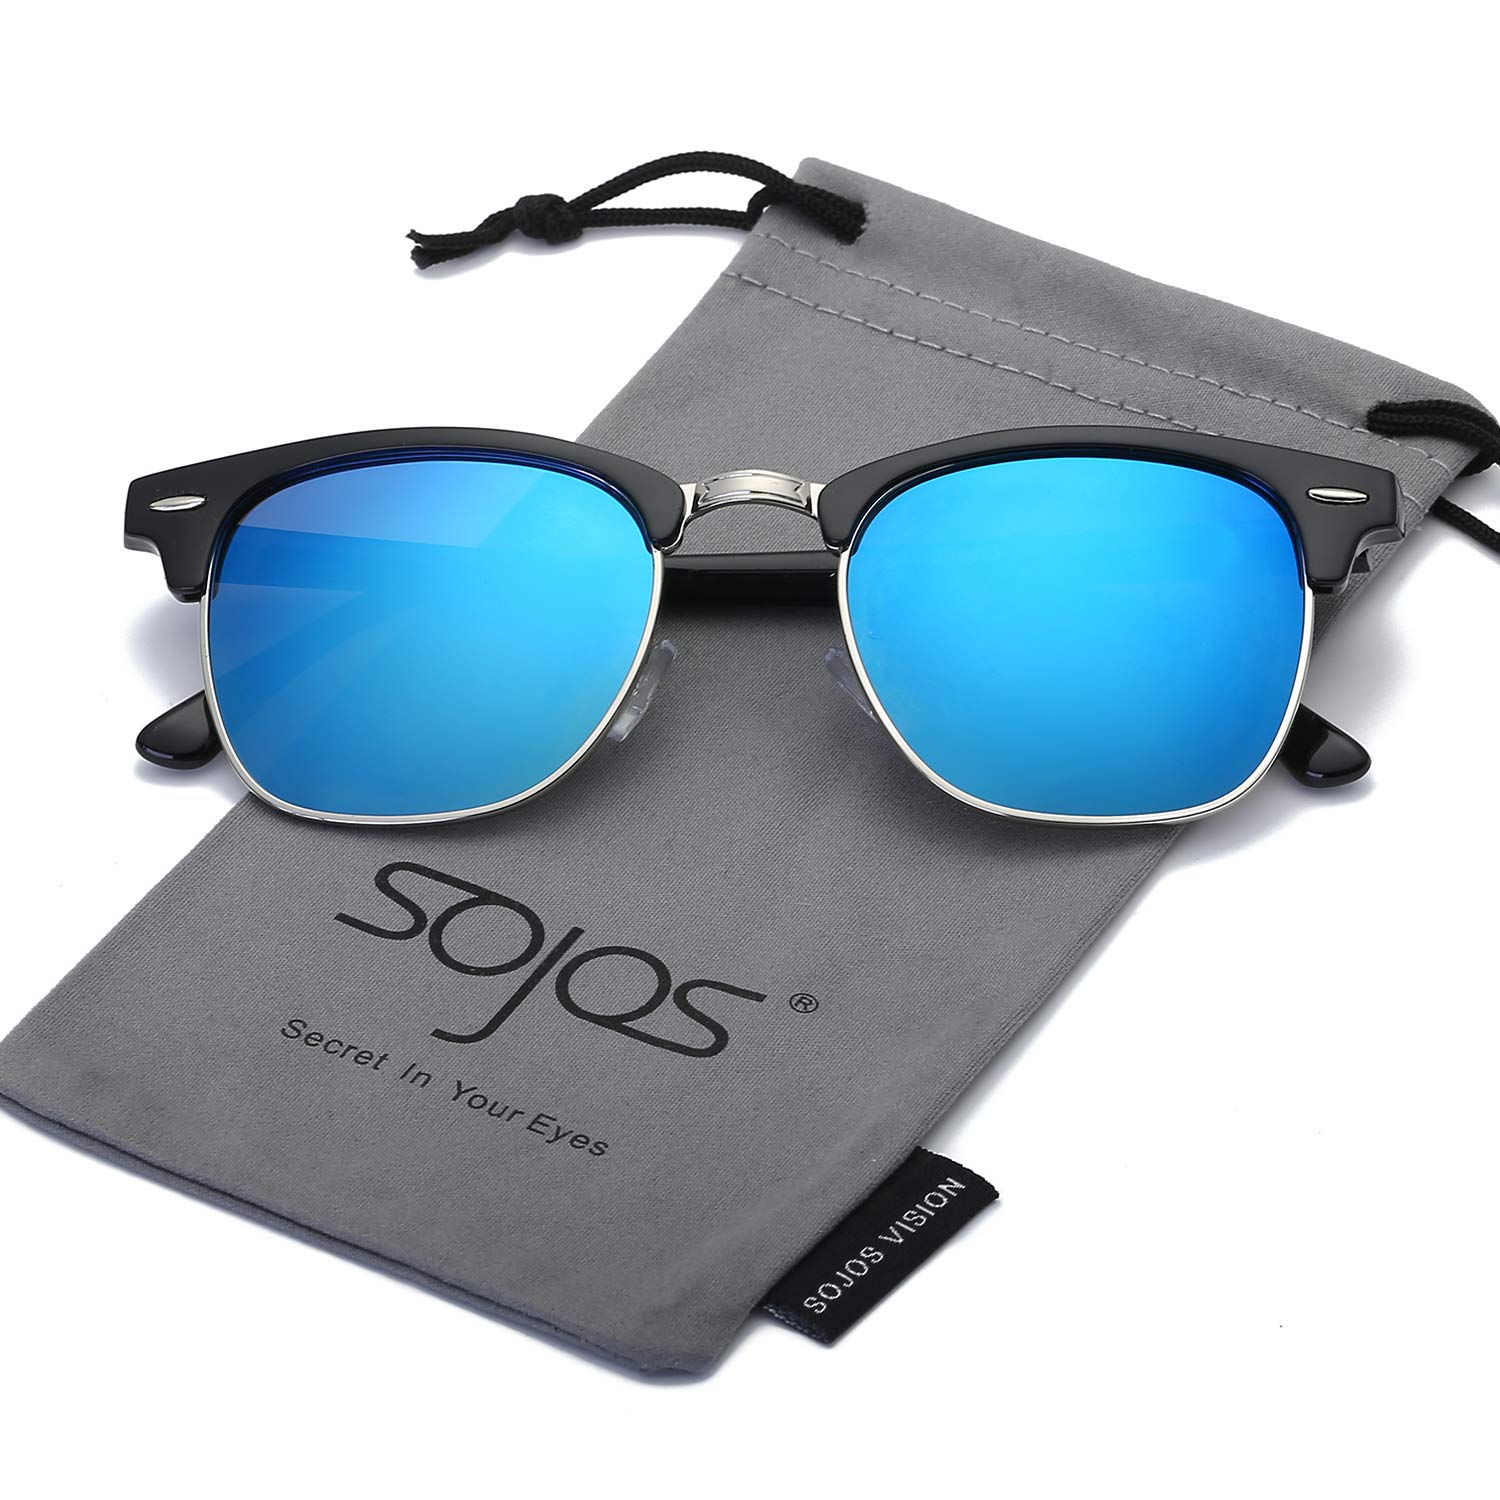 SOJOS Clubmaster Horn-rimmed Semi Rimless Polarized Sunglasses SJ5018 with Black Frame/Blue Polarized Lens